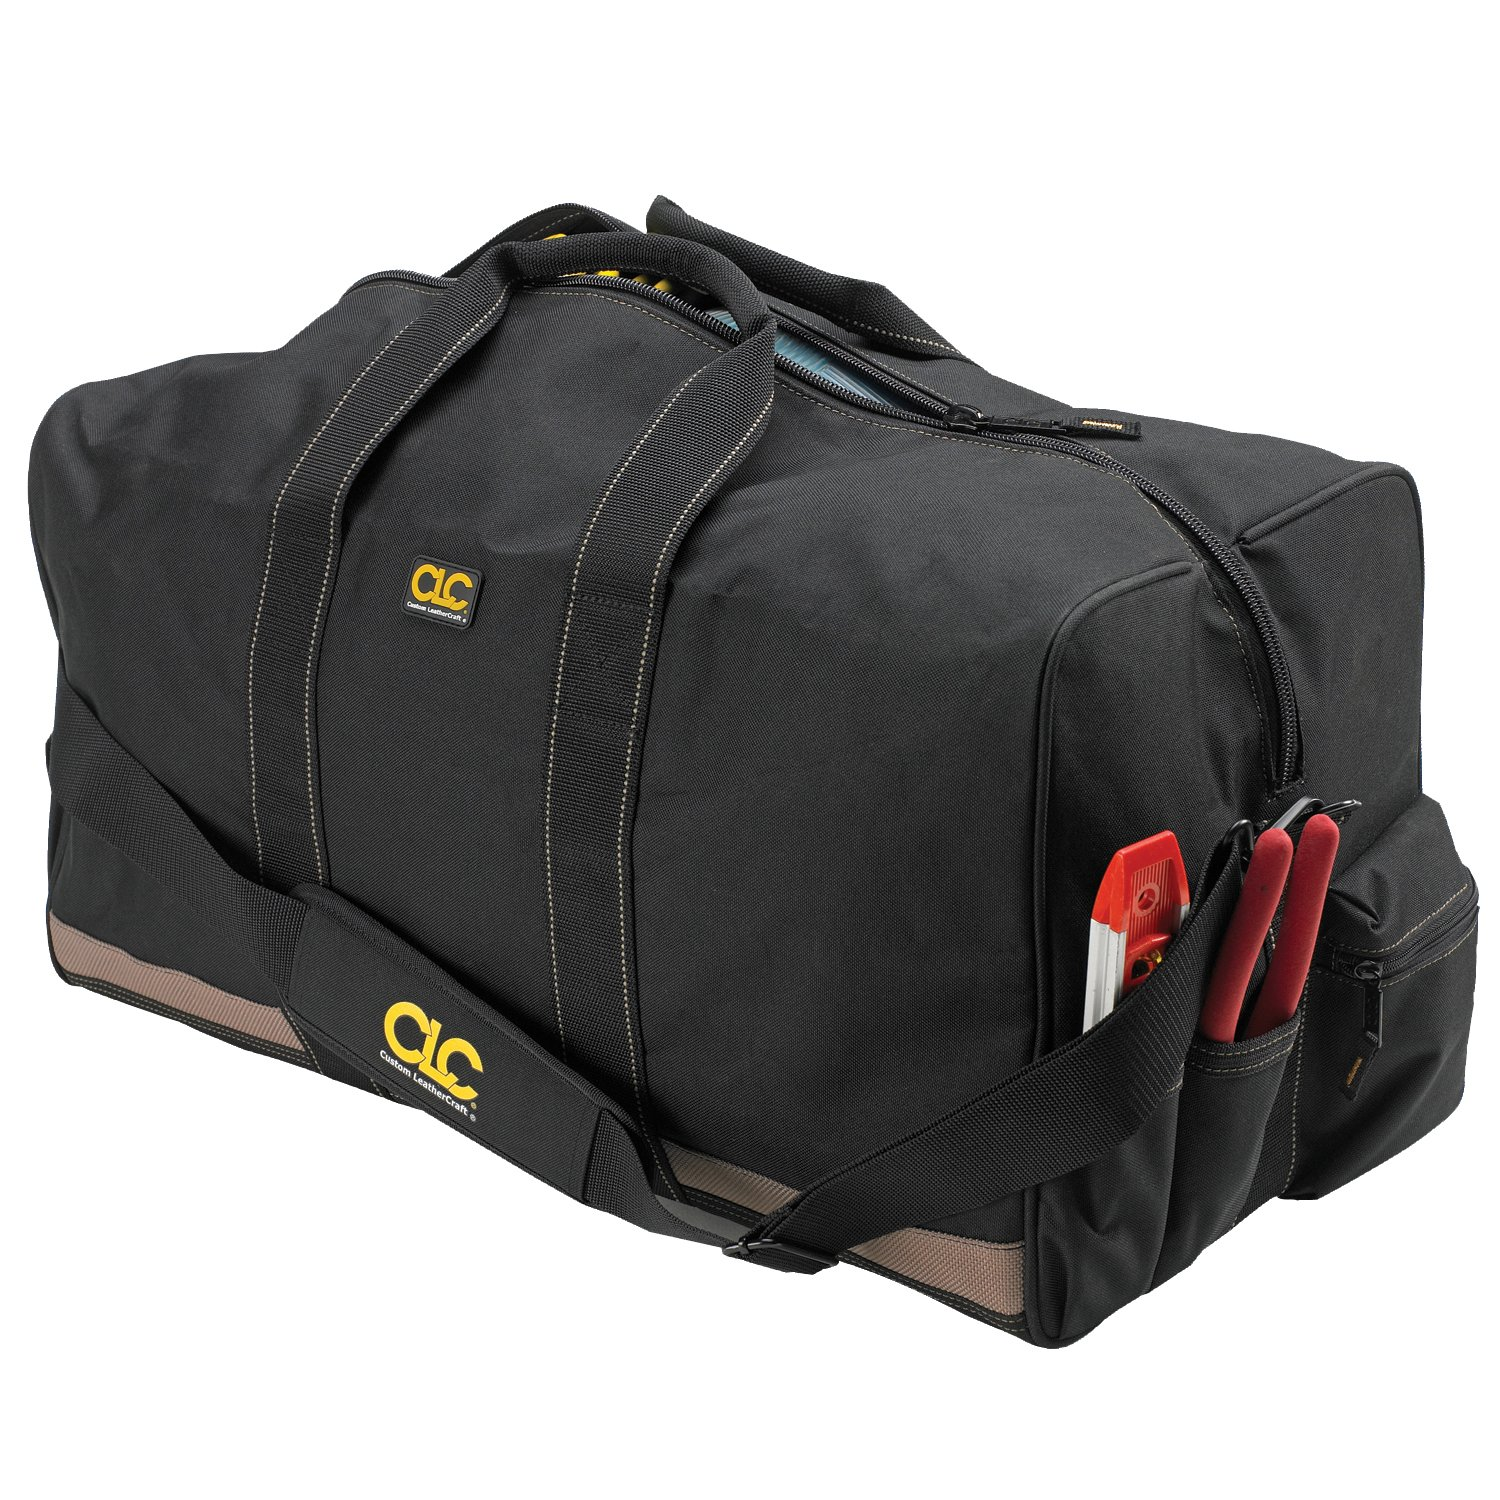 CLC Custom Leathercraft 1111 24 All Purpose Construction Gear Bag with Outside Pockets